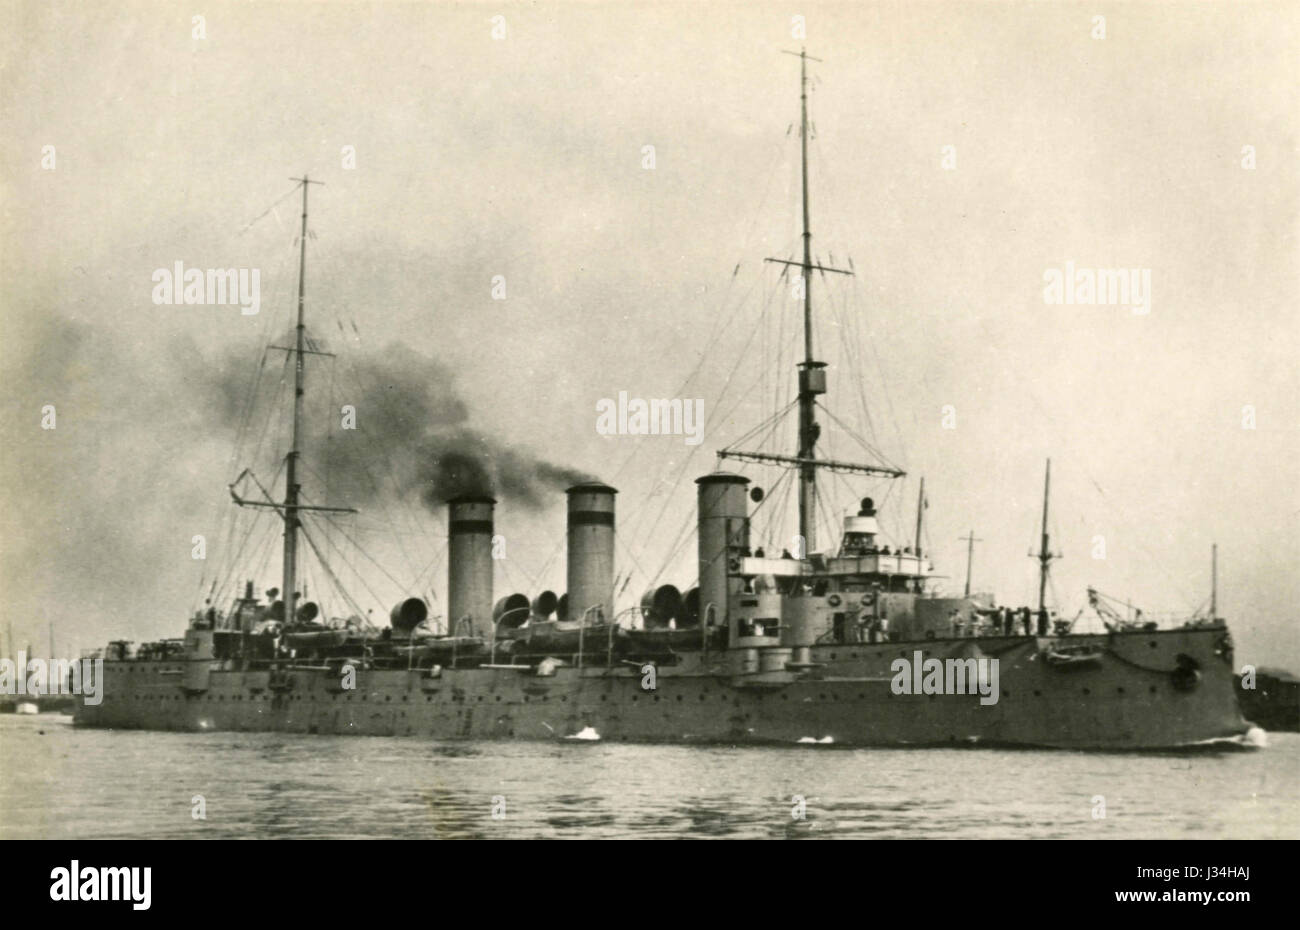 Russian Cruiser Oleg, 1918 - Stock Image